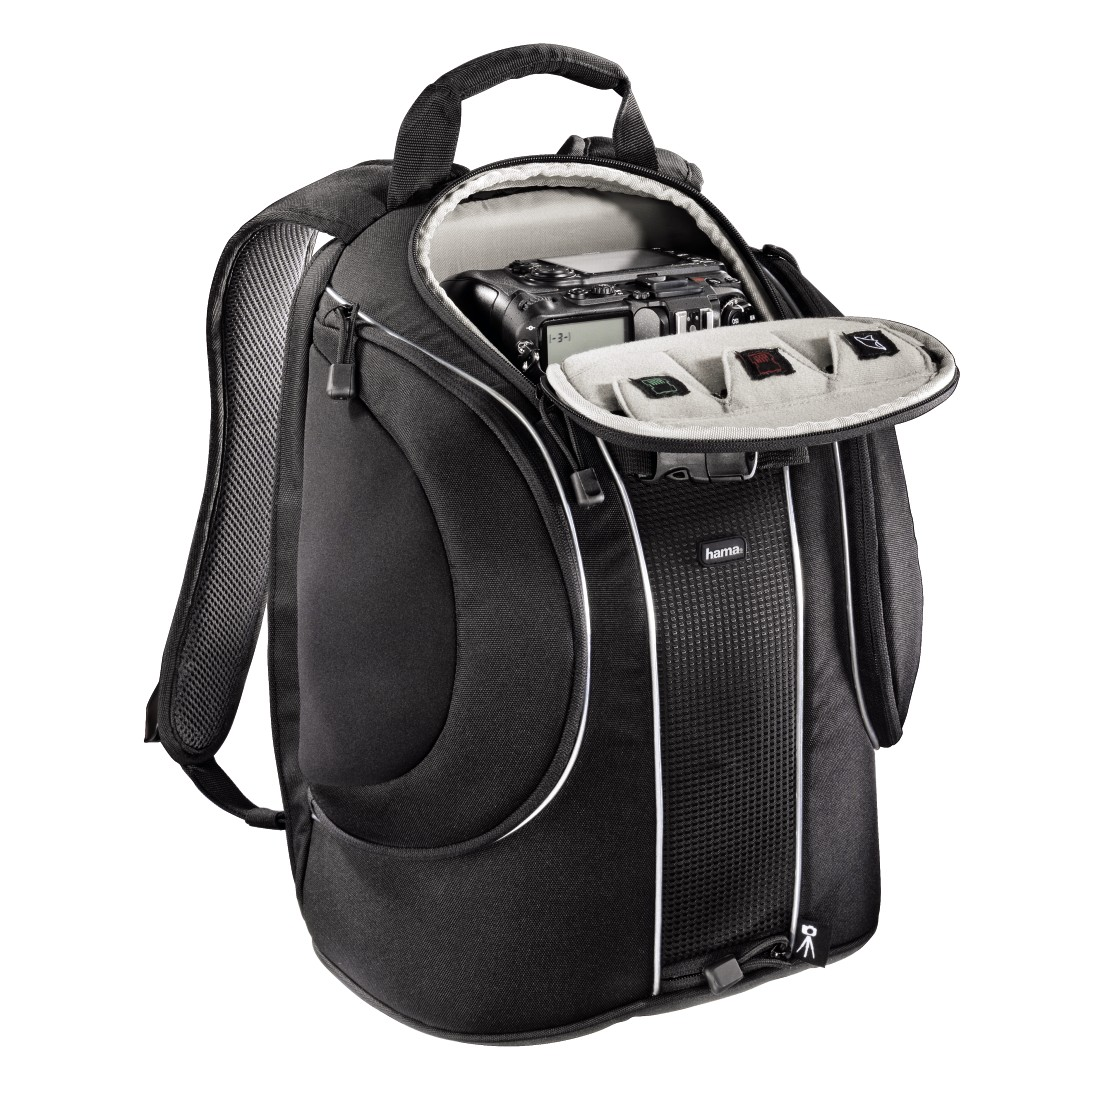 awx High-Res Appliance - Hama, Daytour Camera Backpack, 180, black